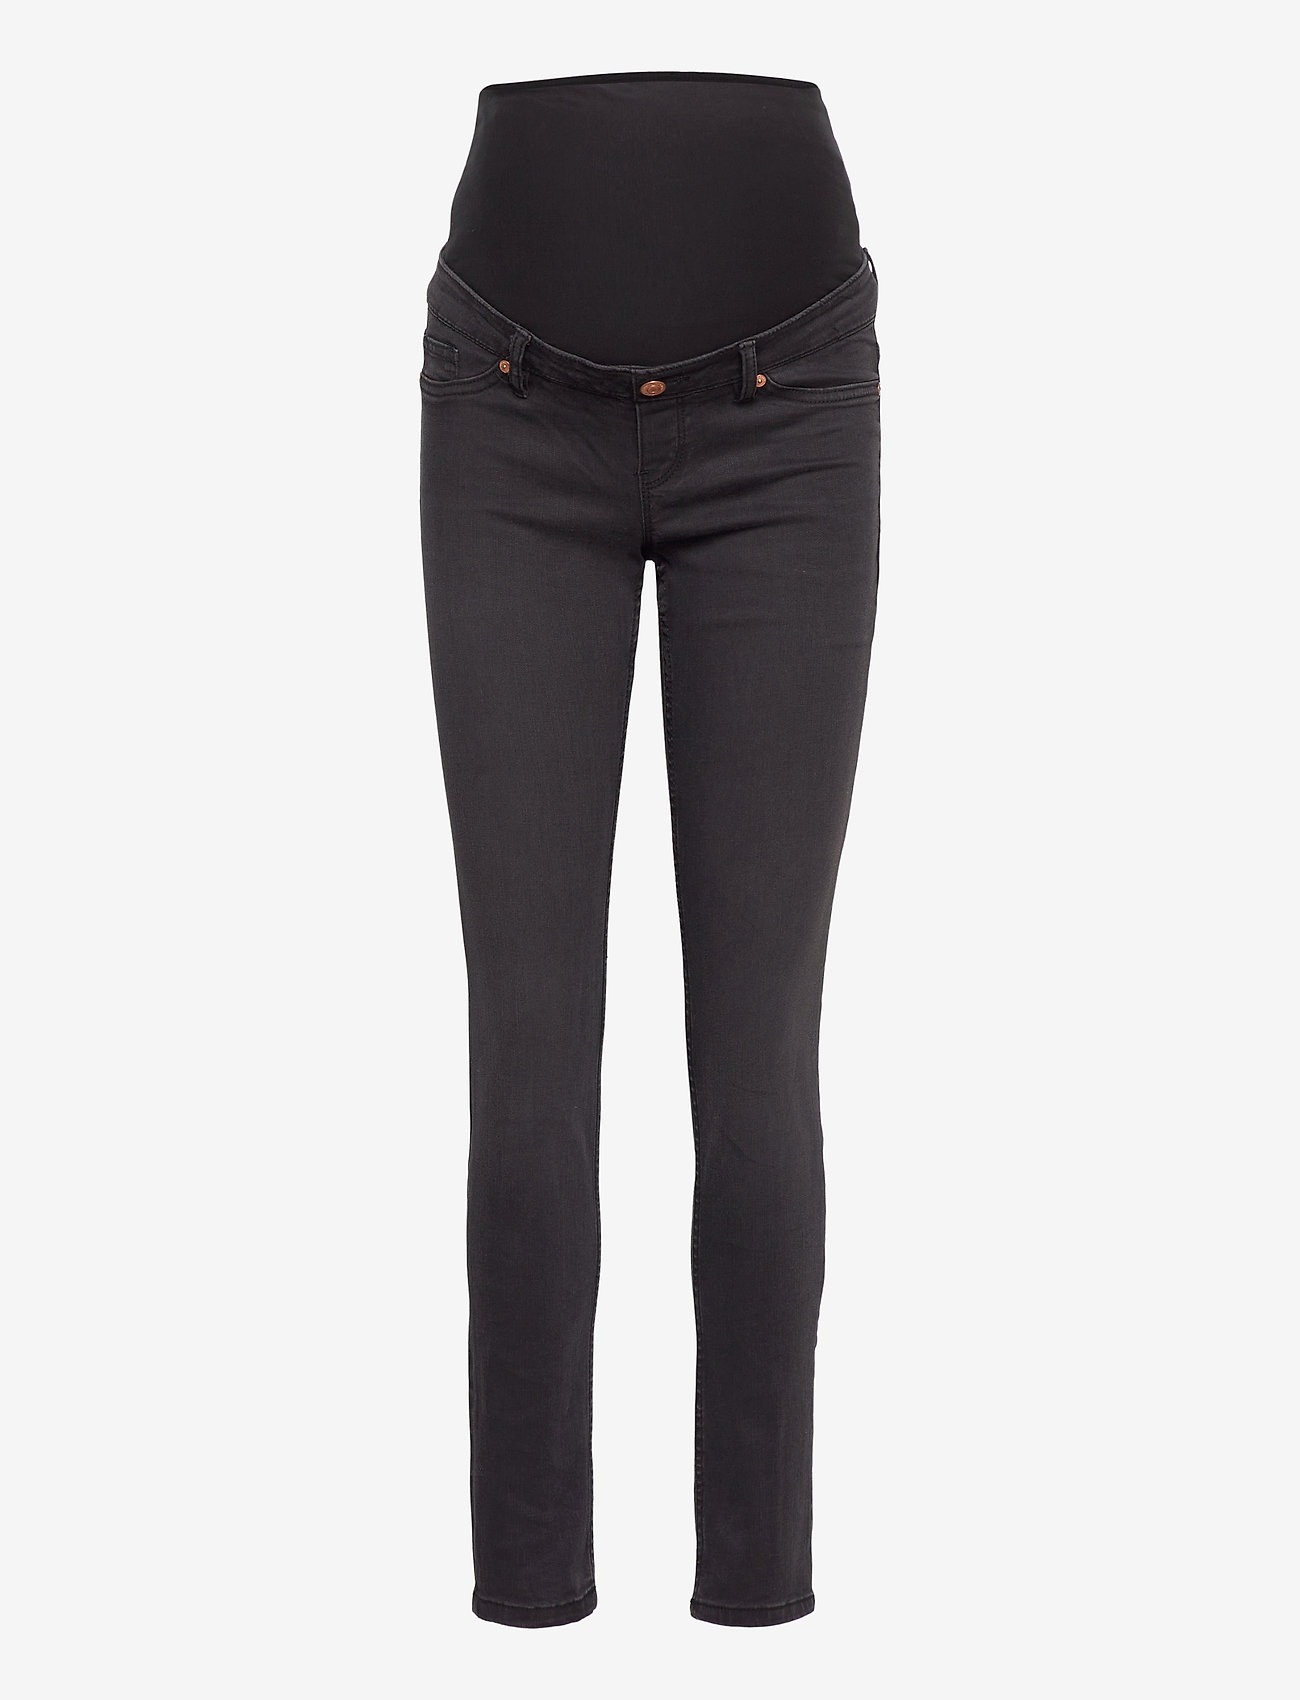 Lindex - Trs denim MOM Tova soft black - mom jeans - black - 0